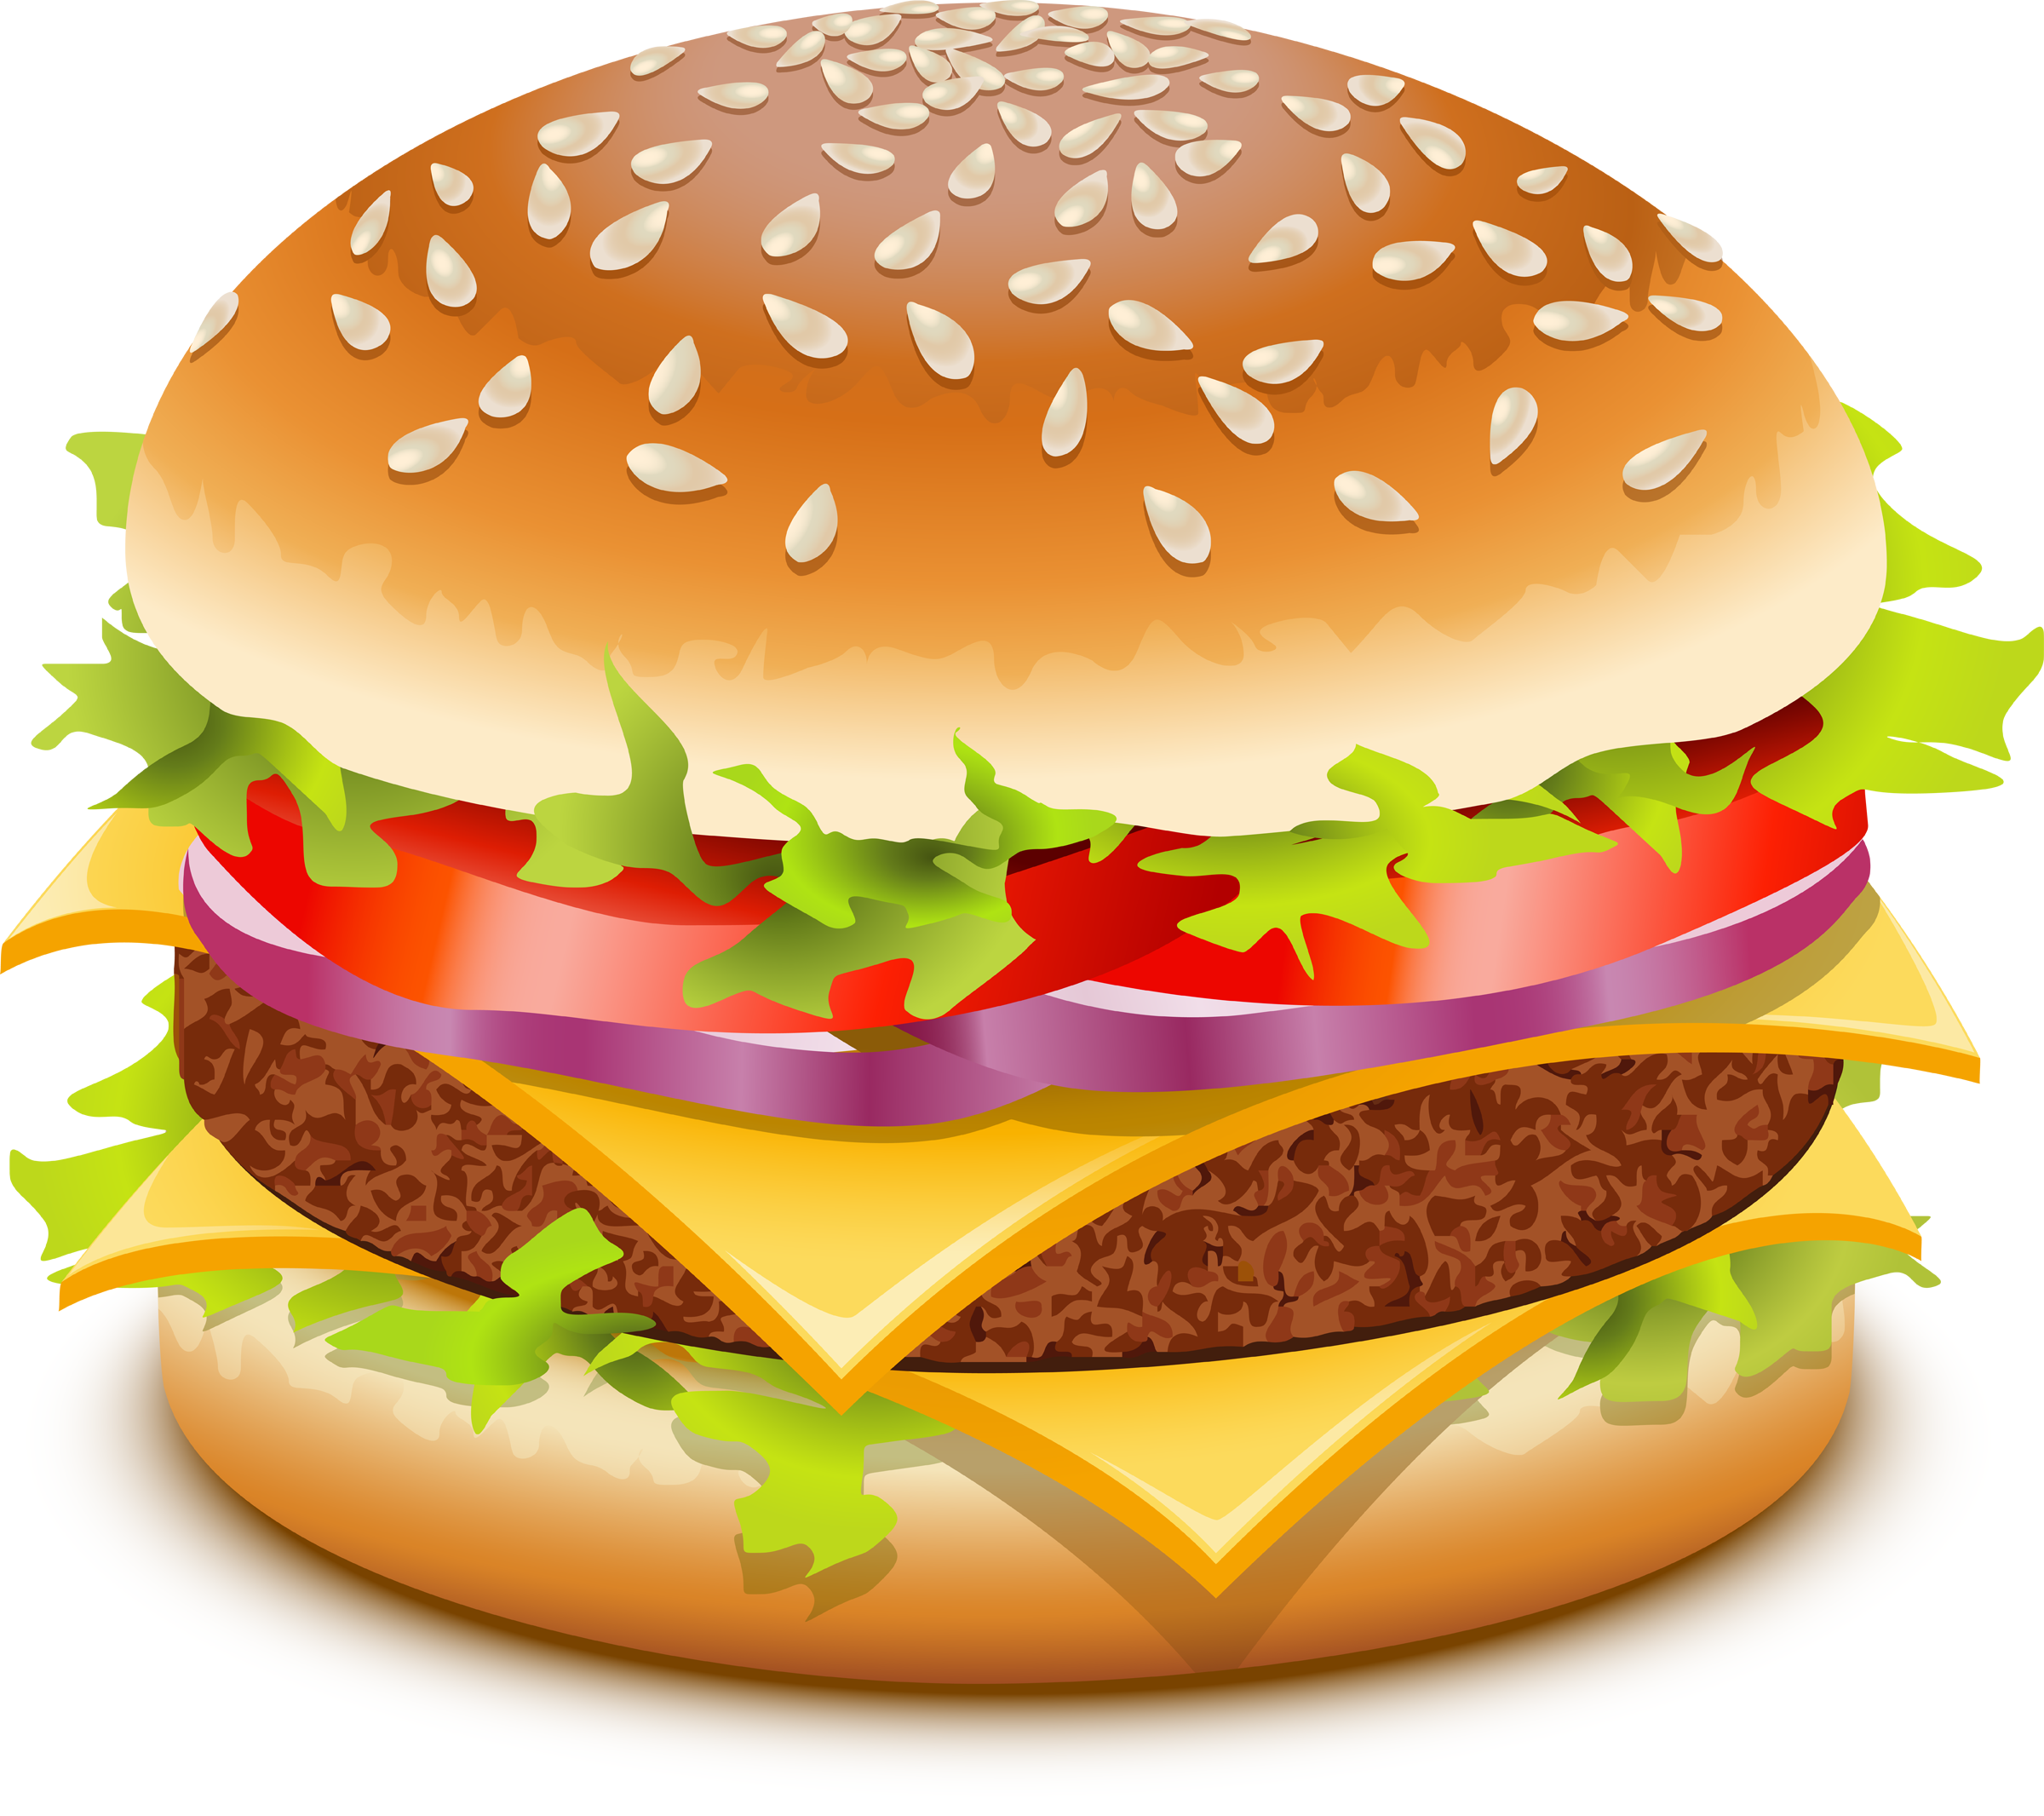 Veggie Burger clipart Clip Download Free cartoon art